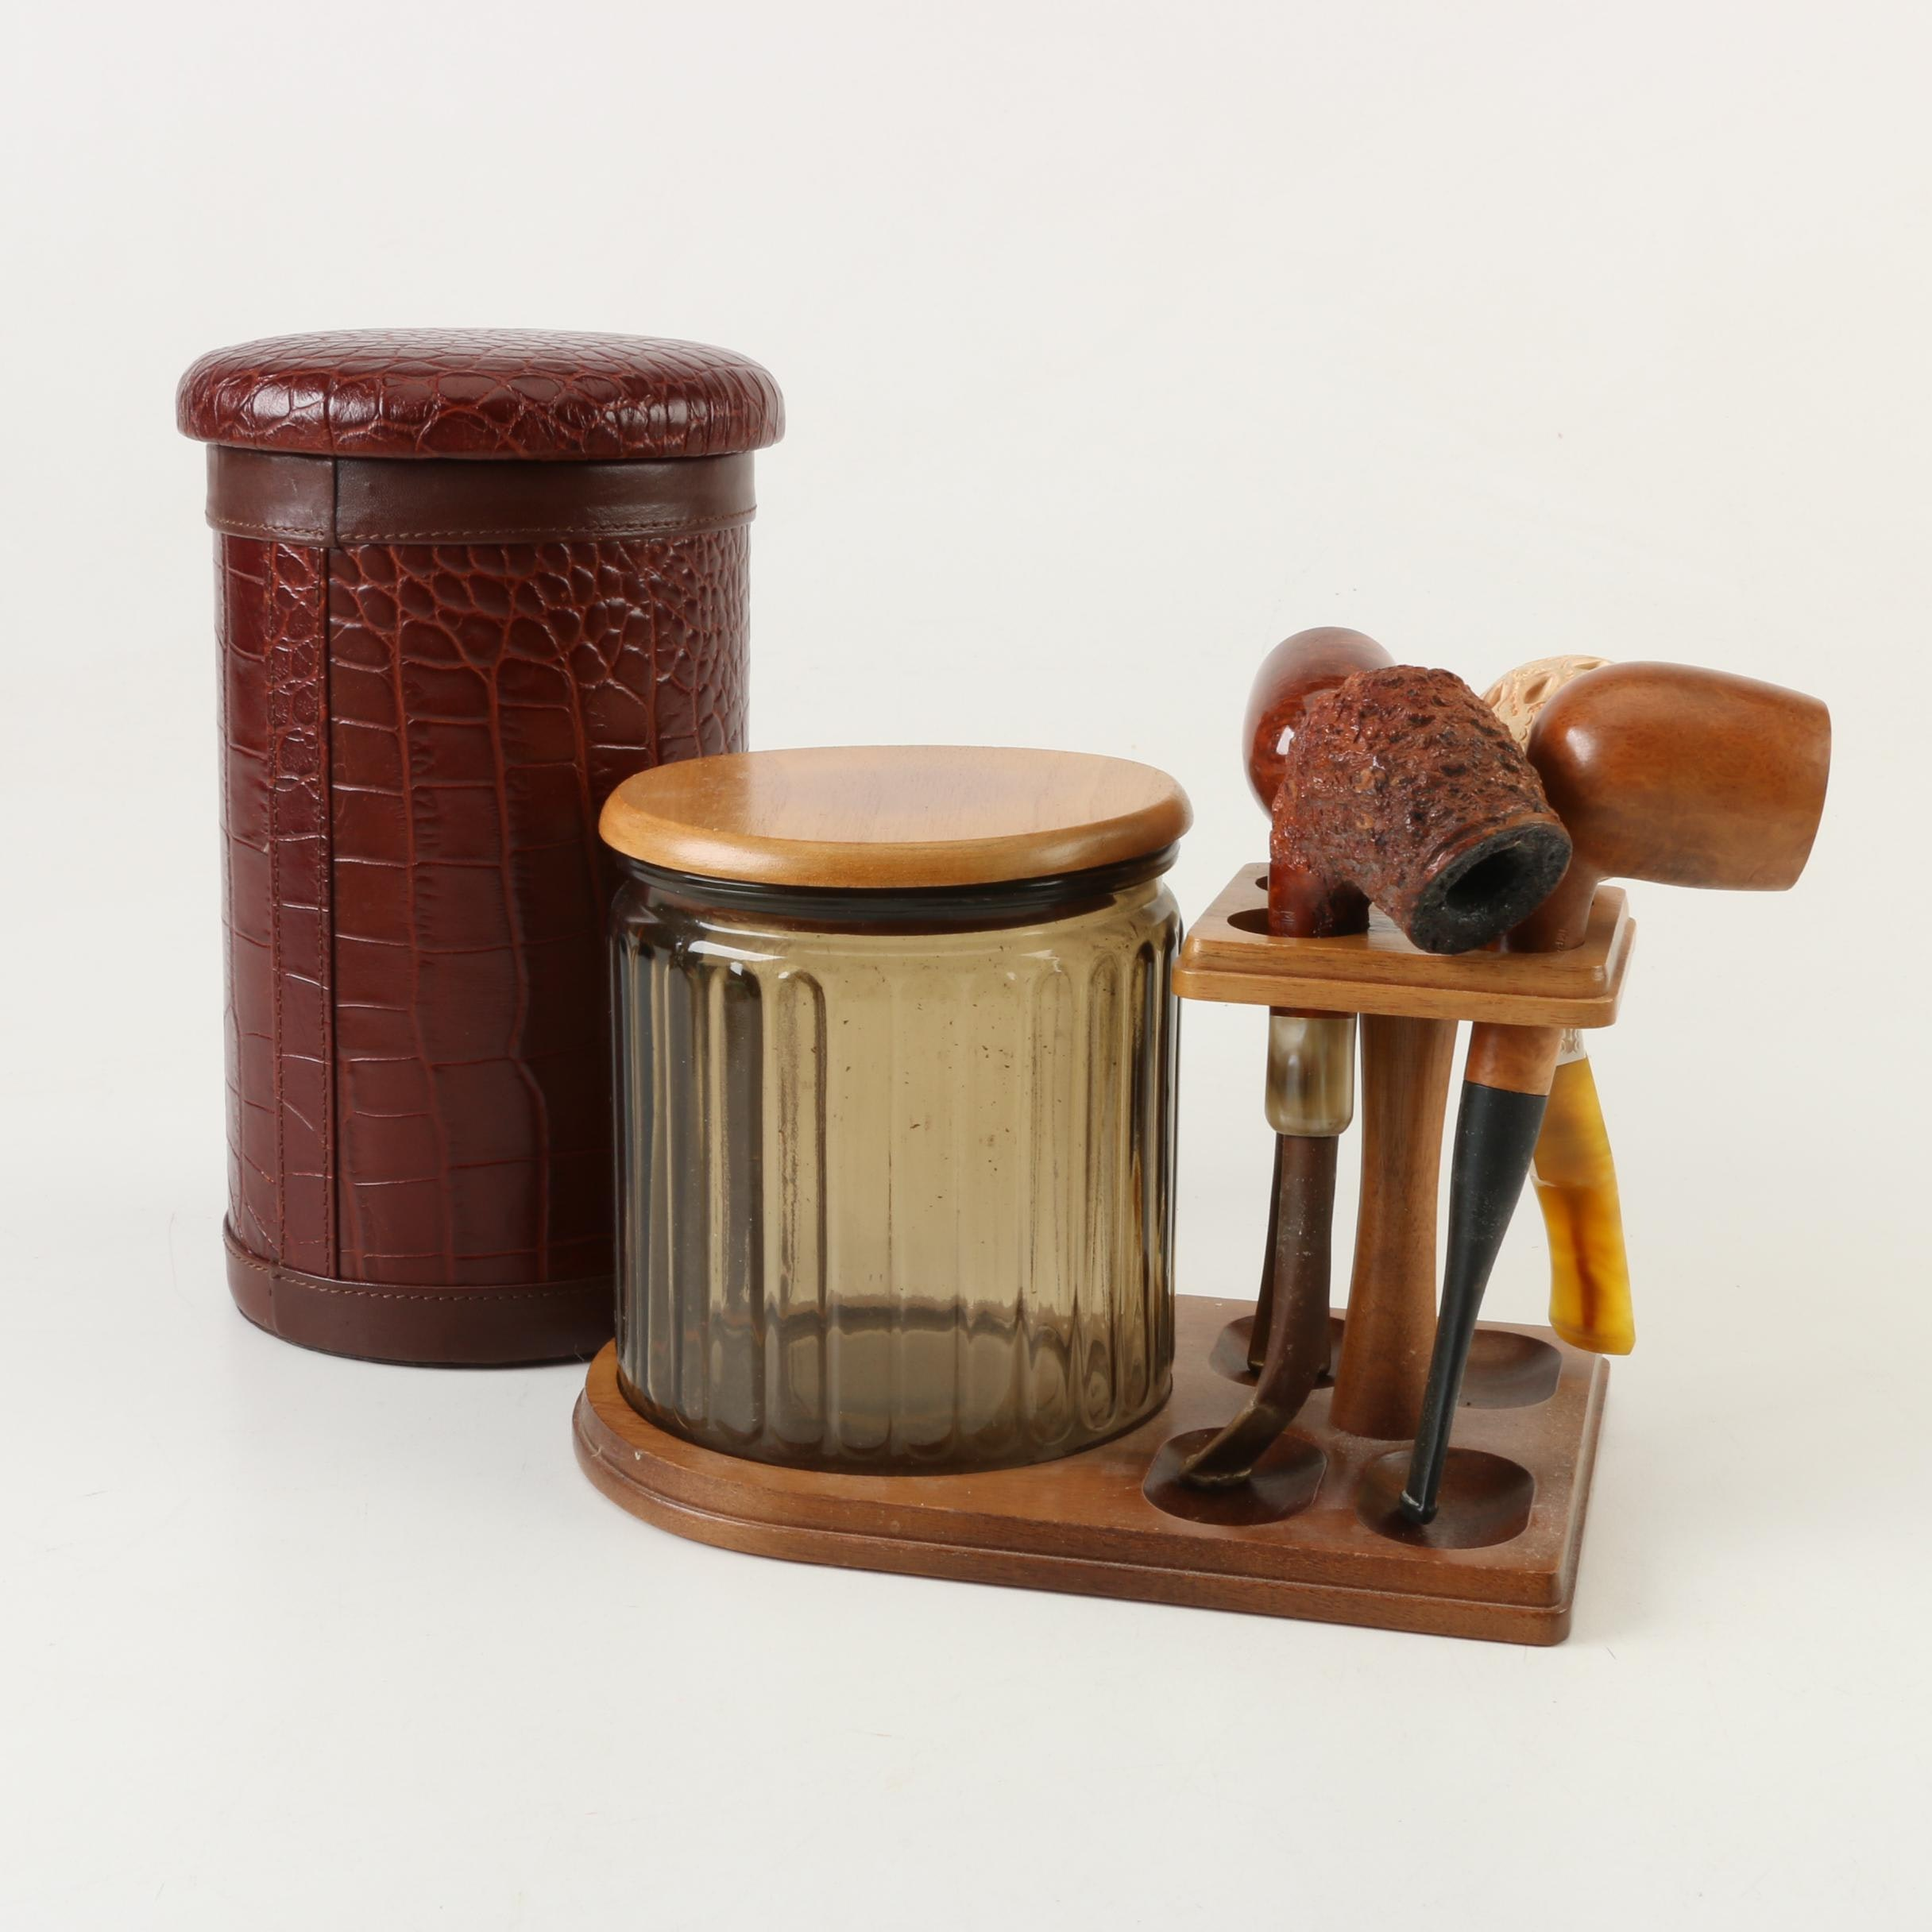 Meerschaum and Briar Tobacco Pipes on Stand with Jar and Humidor